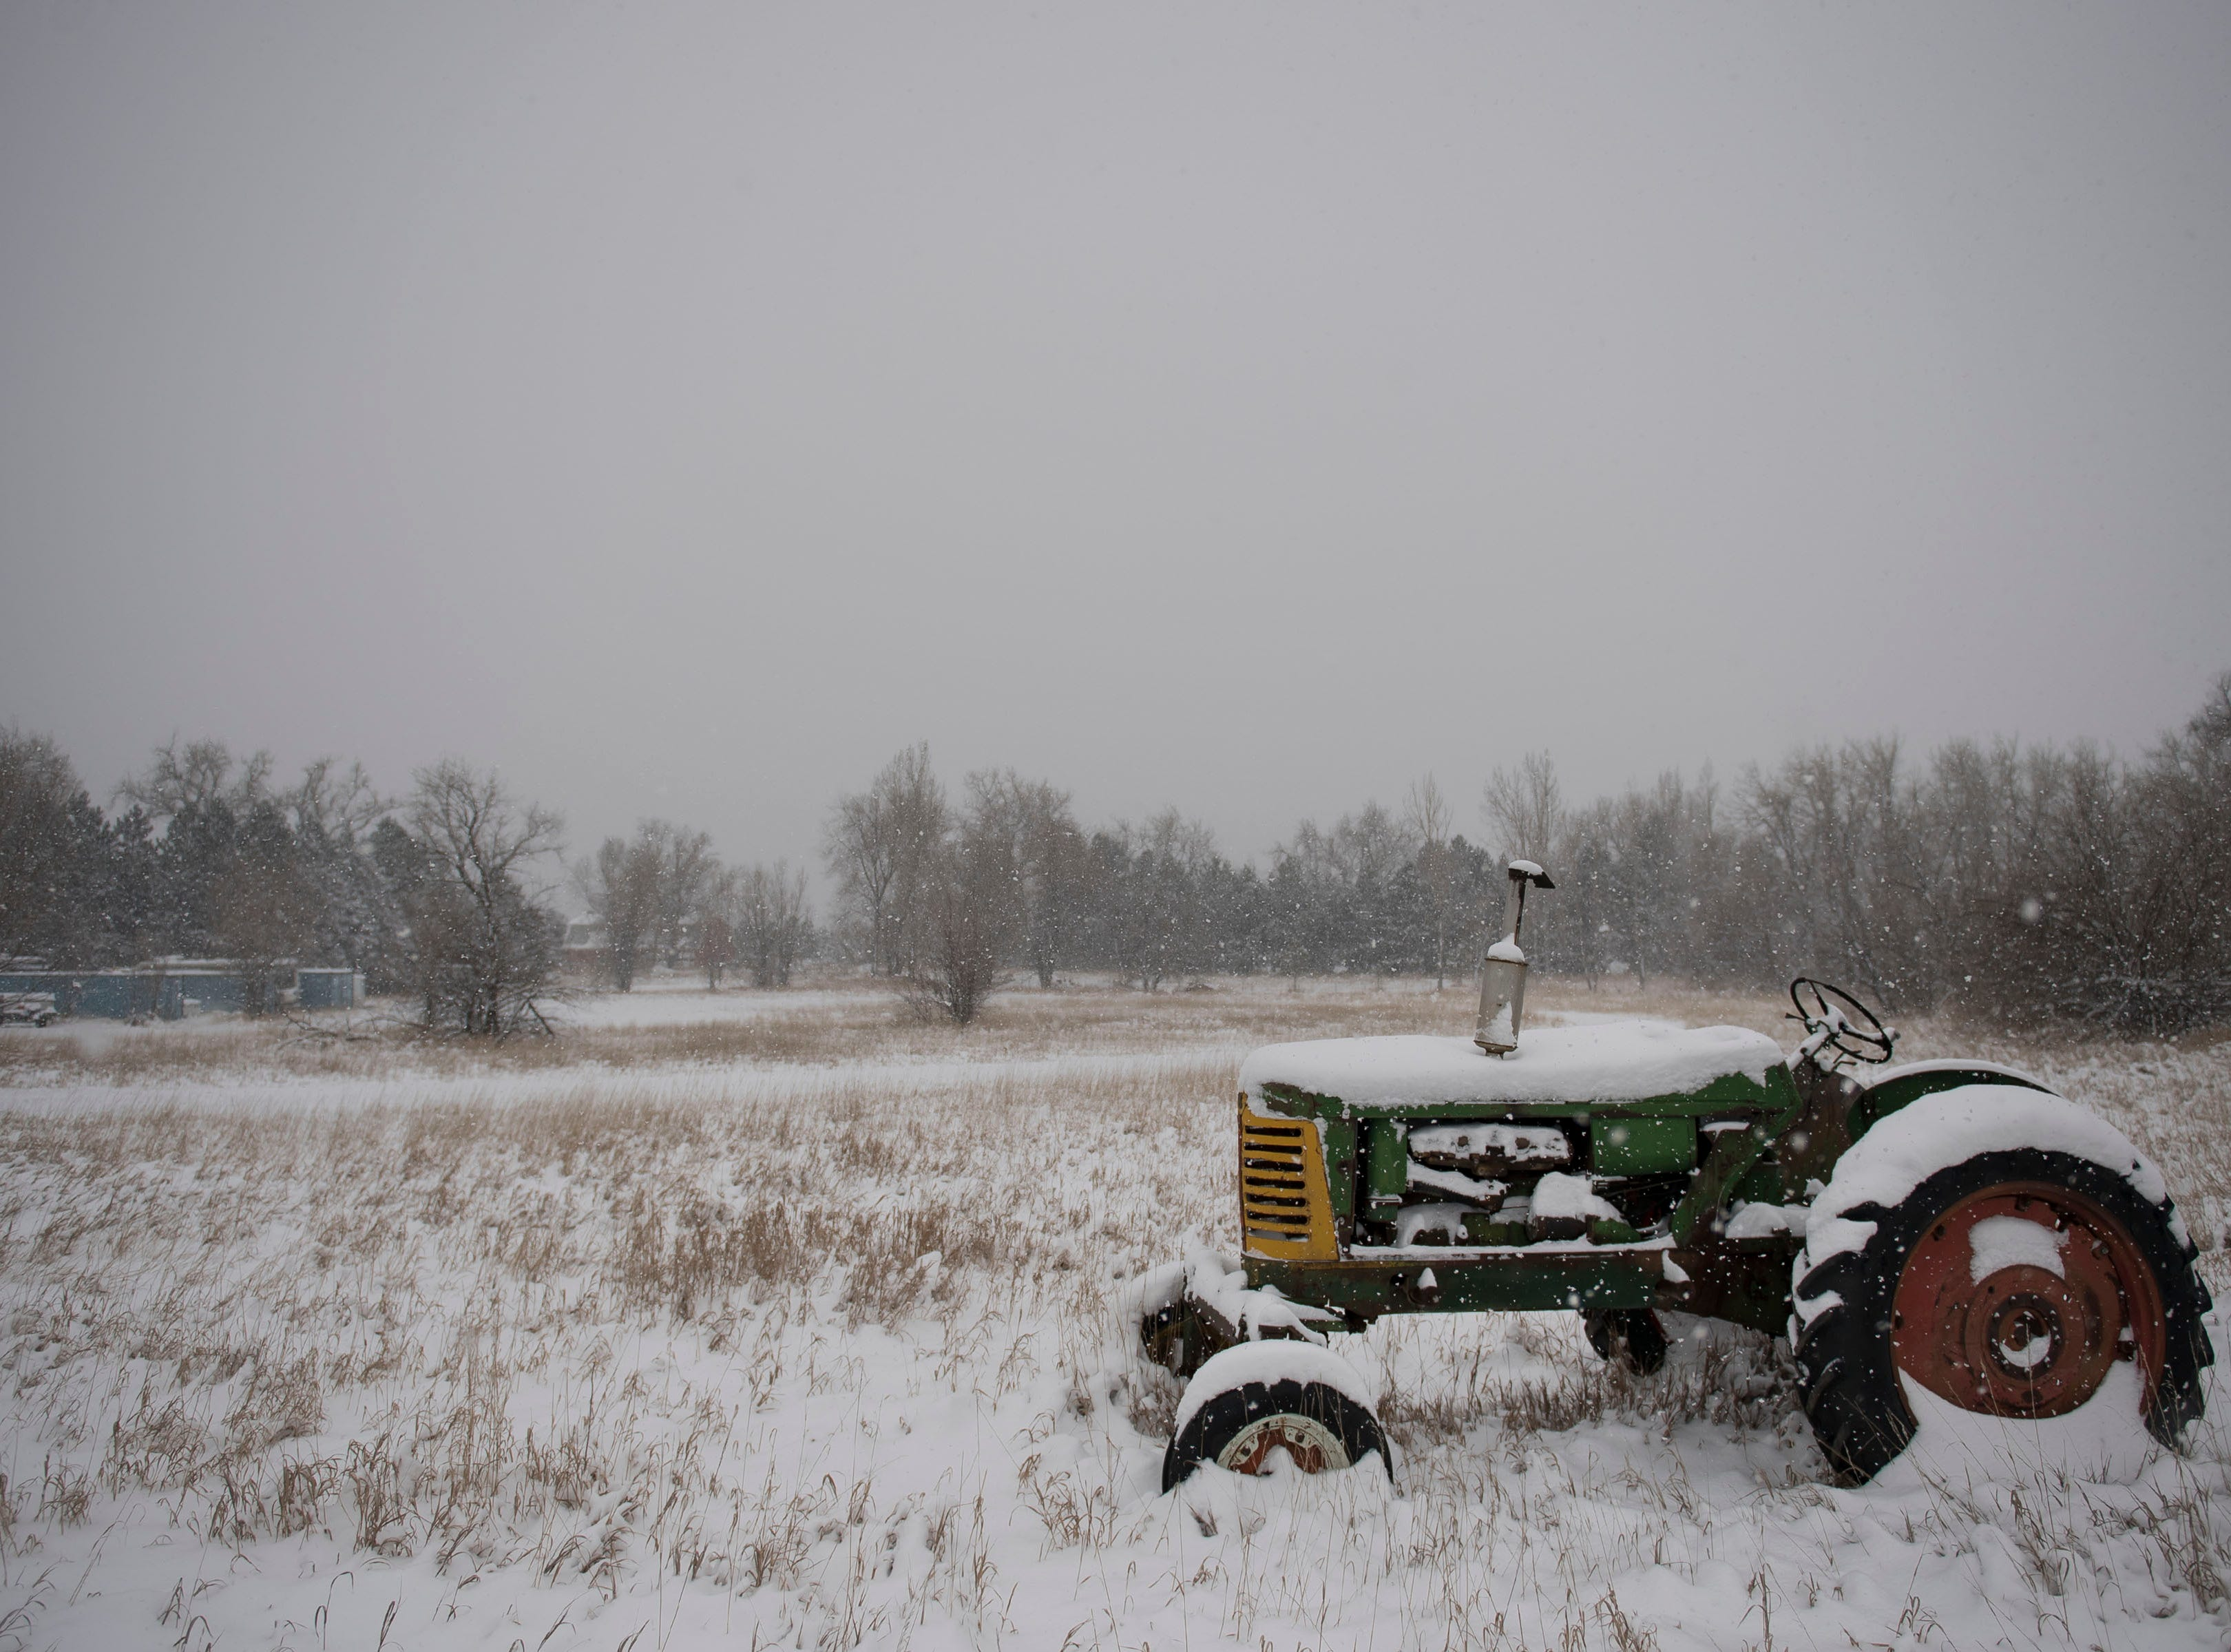 An Oliver 88 tractor sits in a field off Laporte Avenue during a snowstorm on Saturday, March 2, 2019, in Fort Collins, Colo.